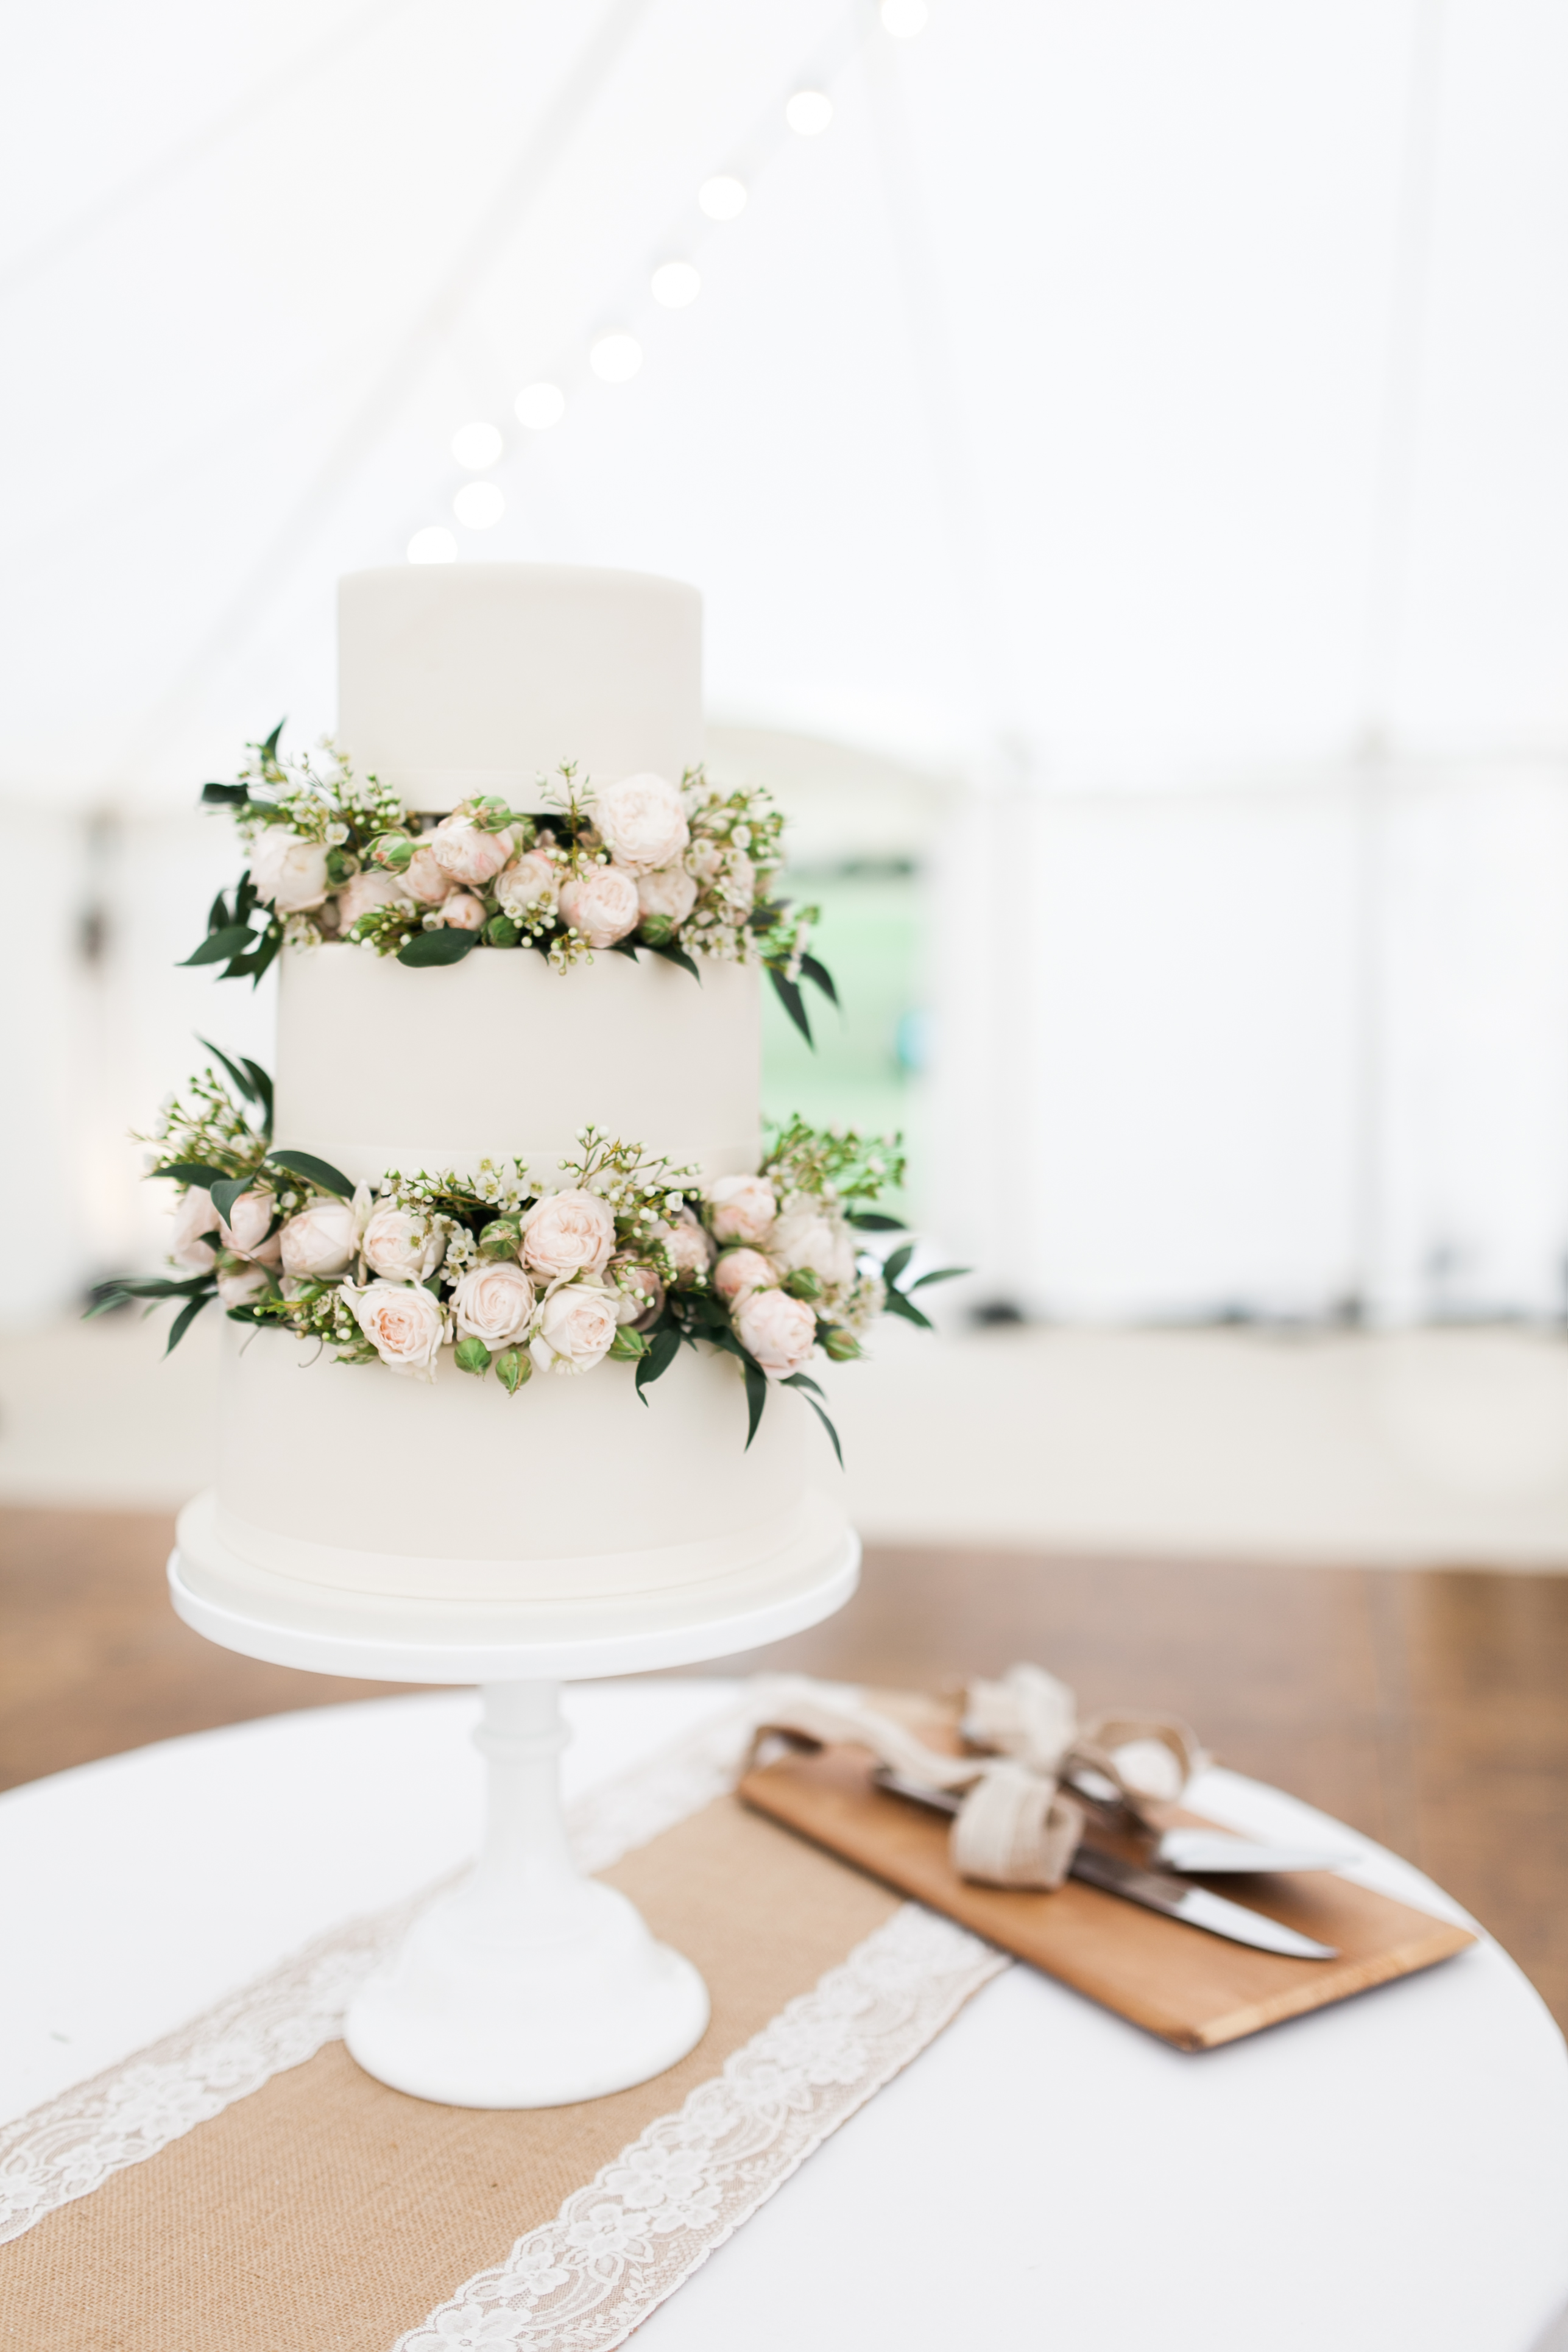 fresh floral wedding cakes with roses in between tiers